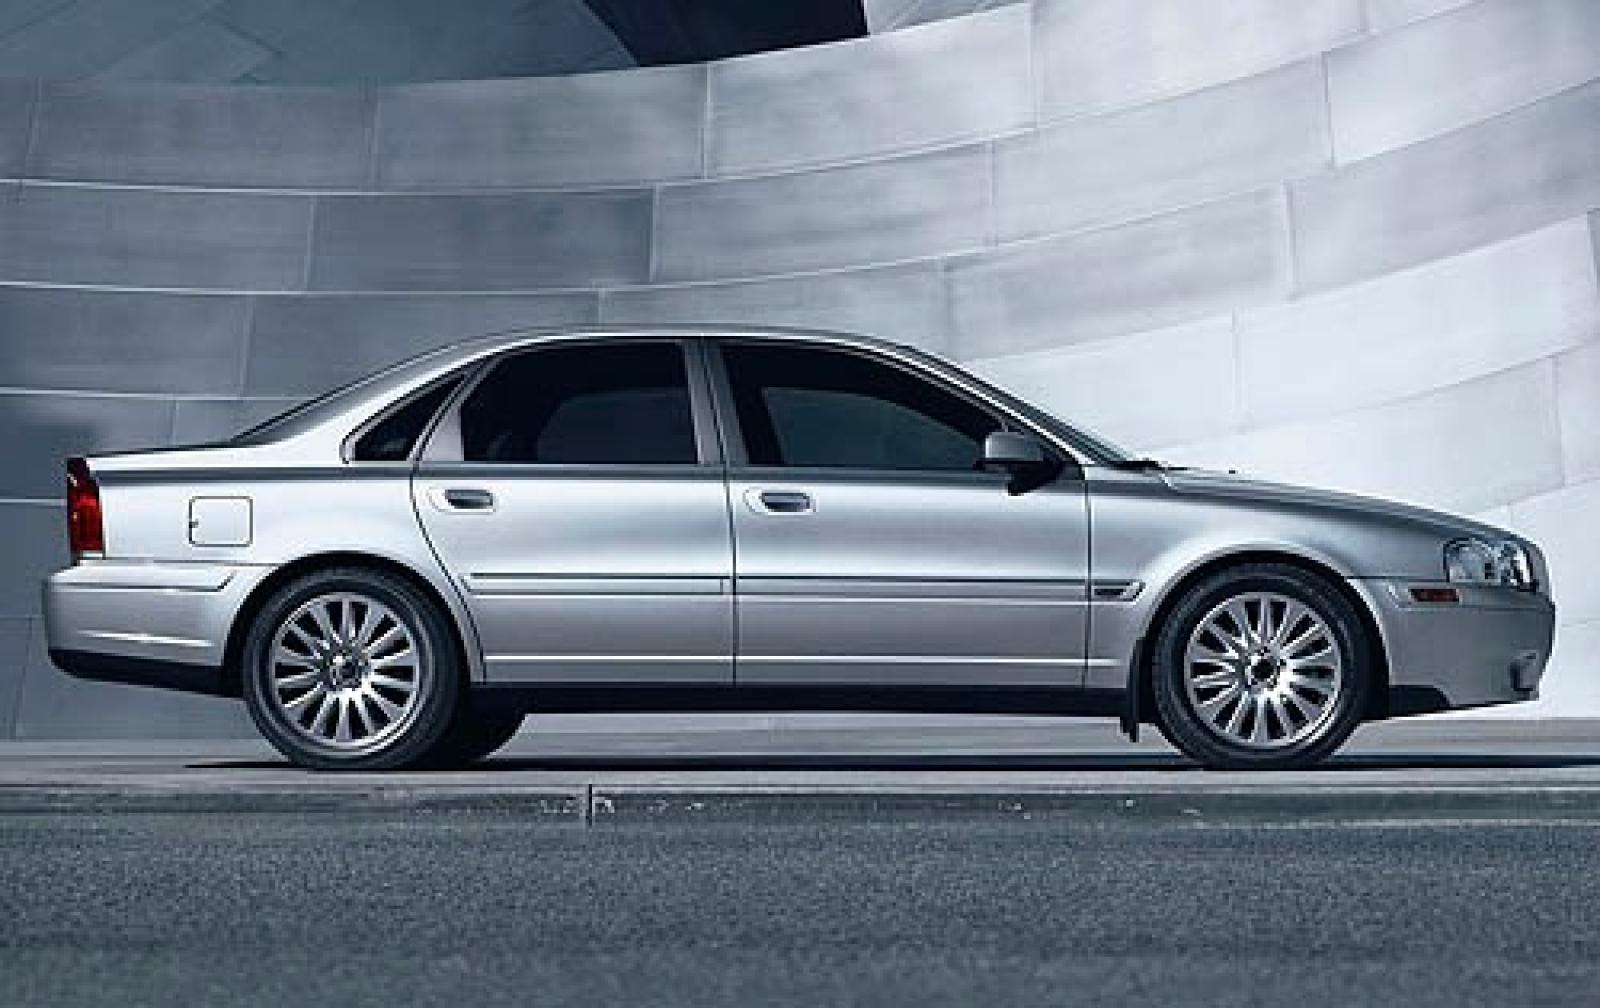 2006 Volvo S80 - Information and photos - ZombieDrive